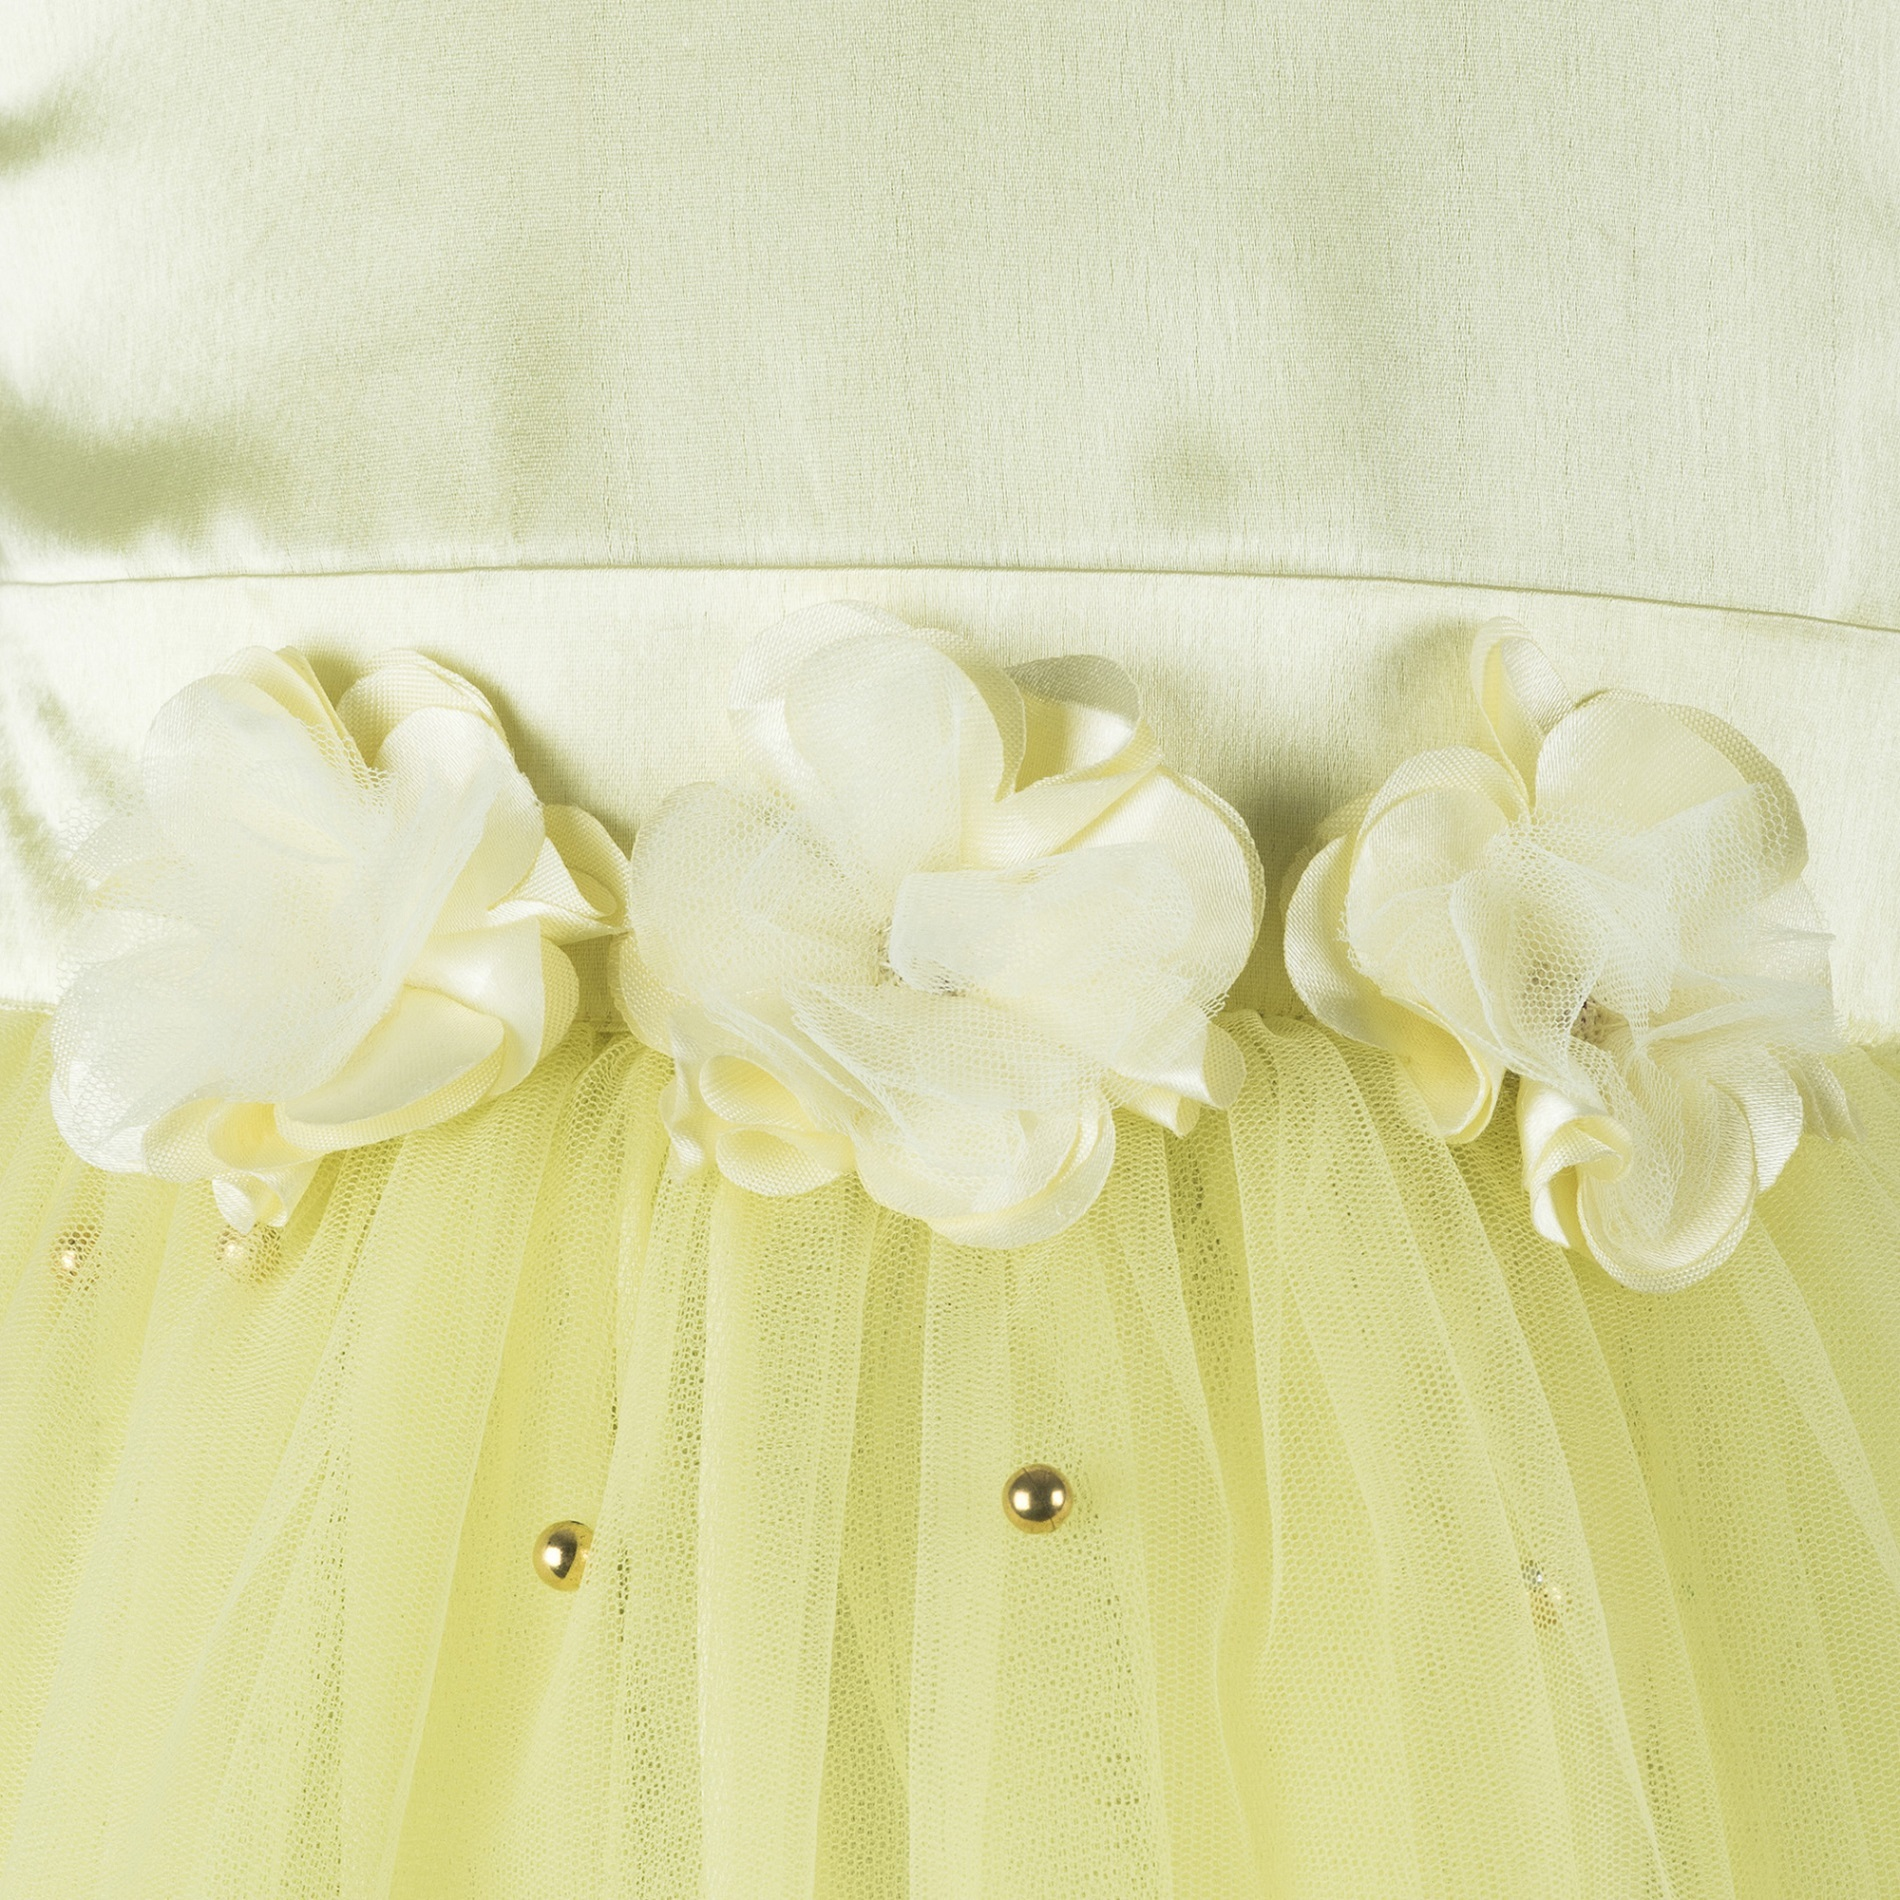 Pearl Embellished Yellow Dress.